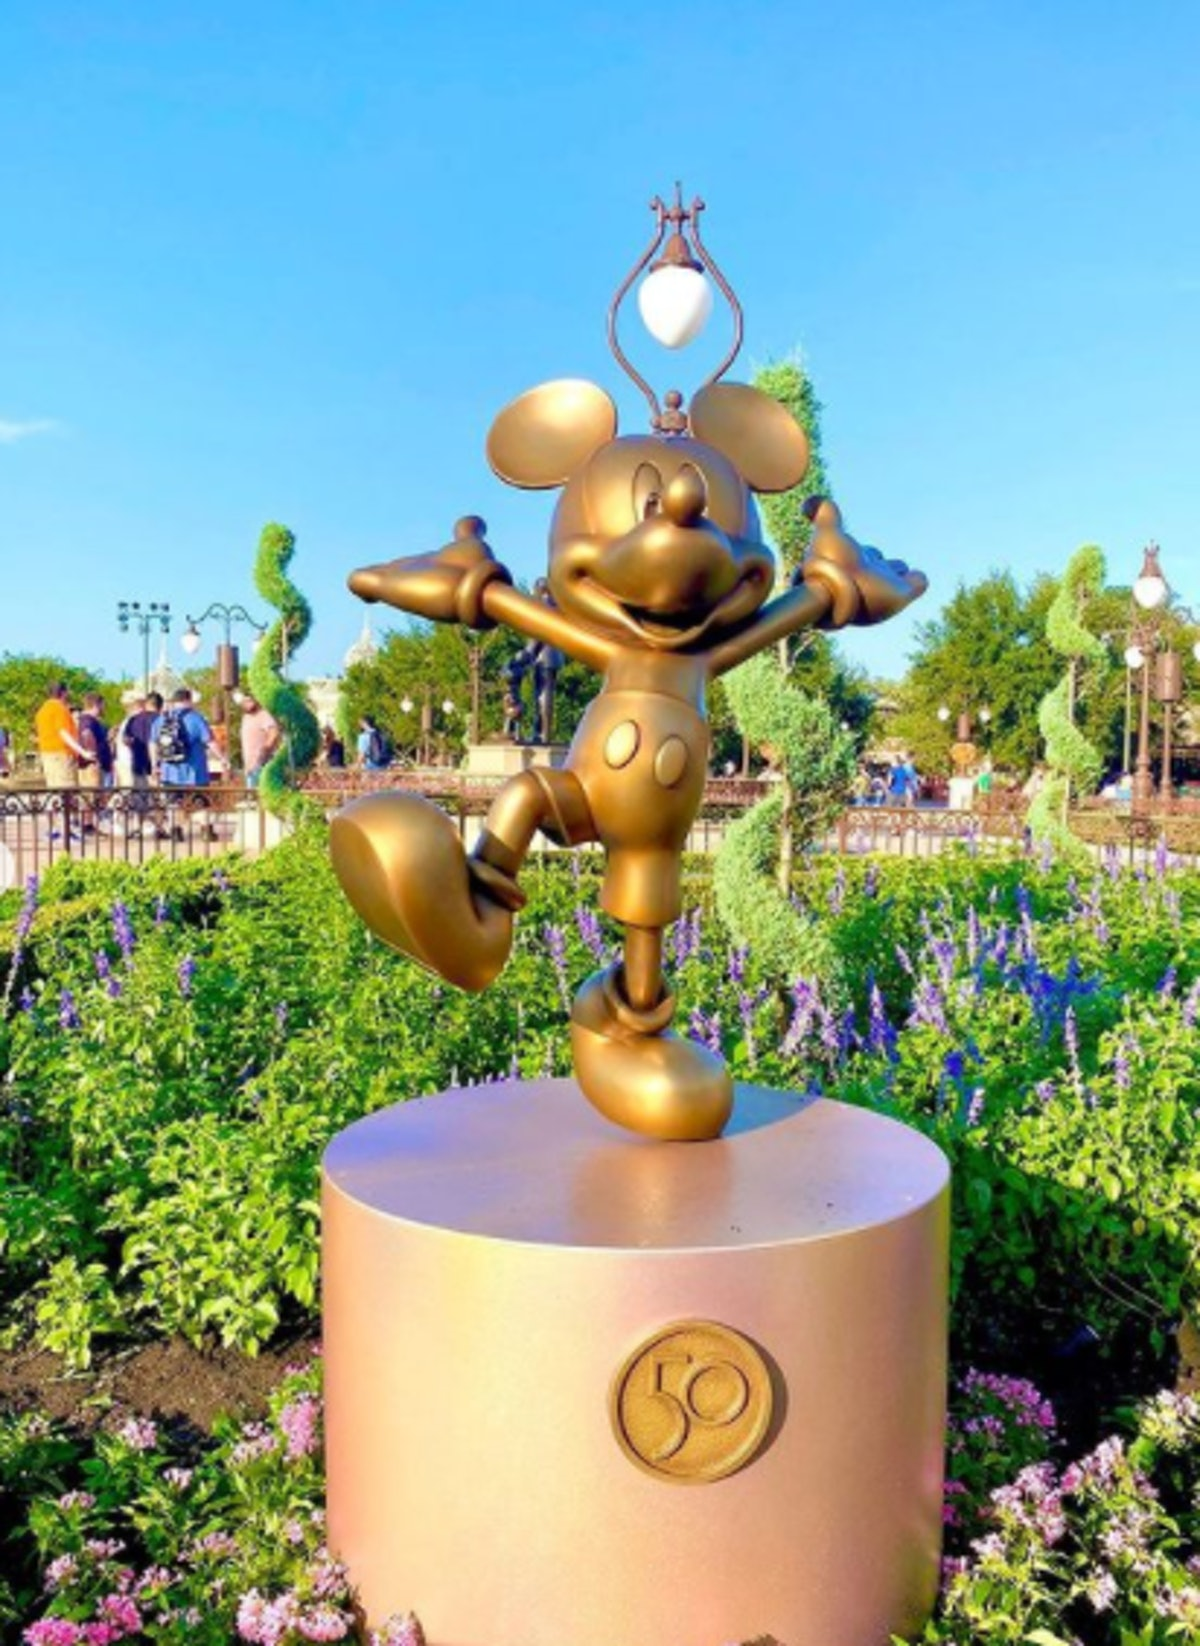 These photos of Disney's gold statues for the 50th anniversary include Mickey Mouse.